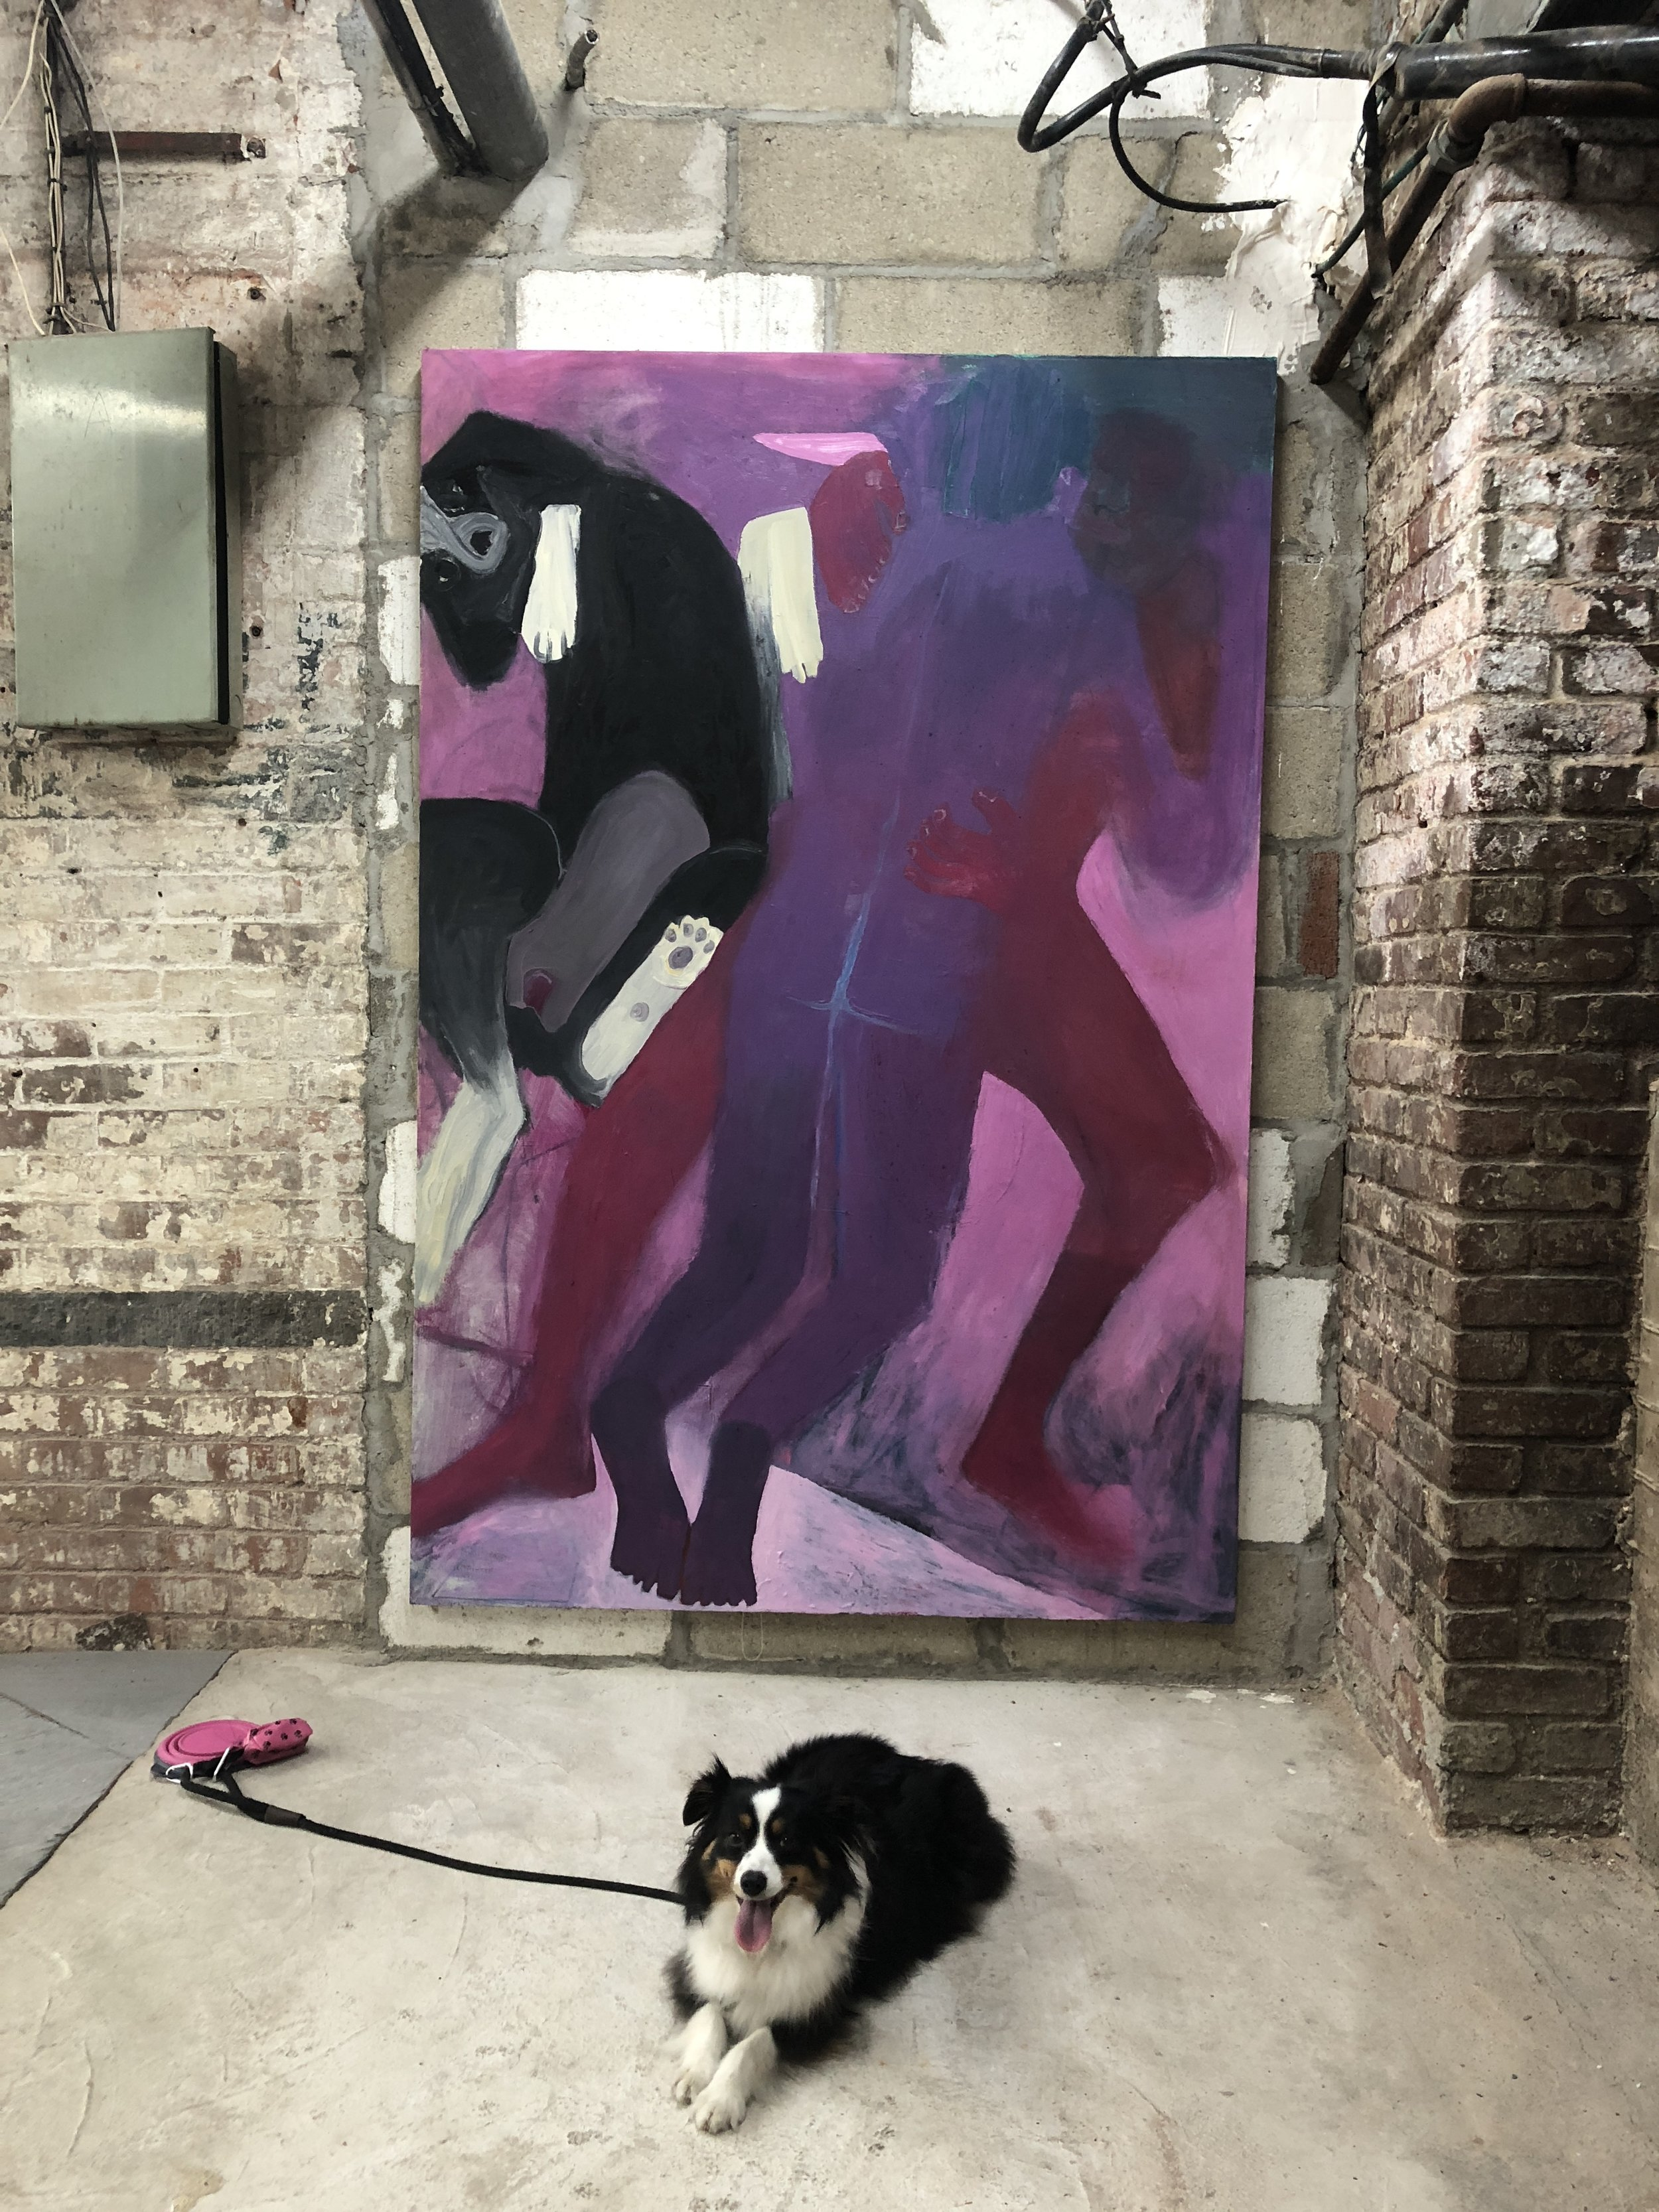 Cheeky: Summer Butts , Marinaro Gallery, July-August 2018